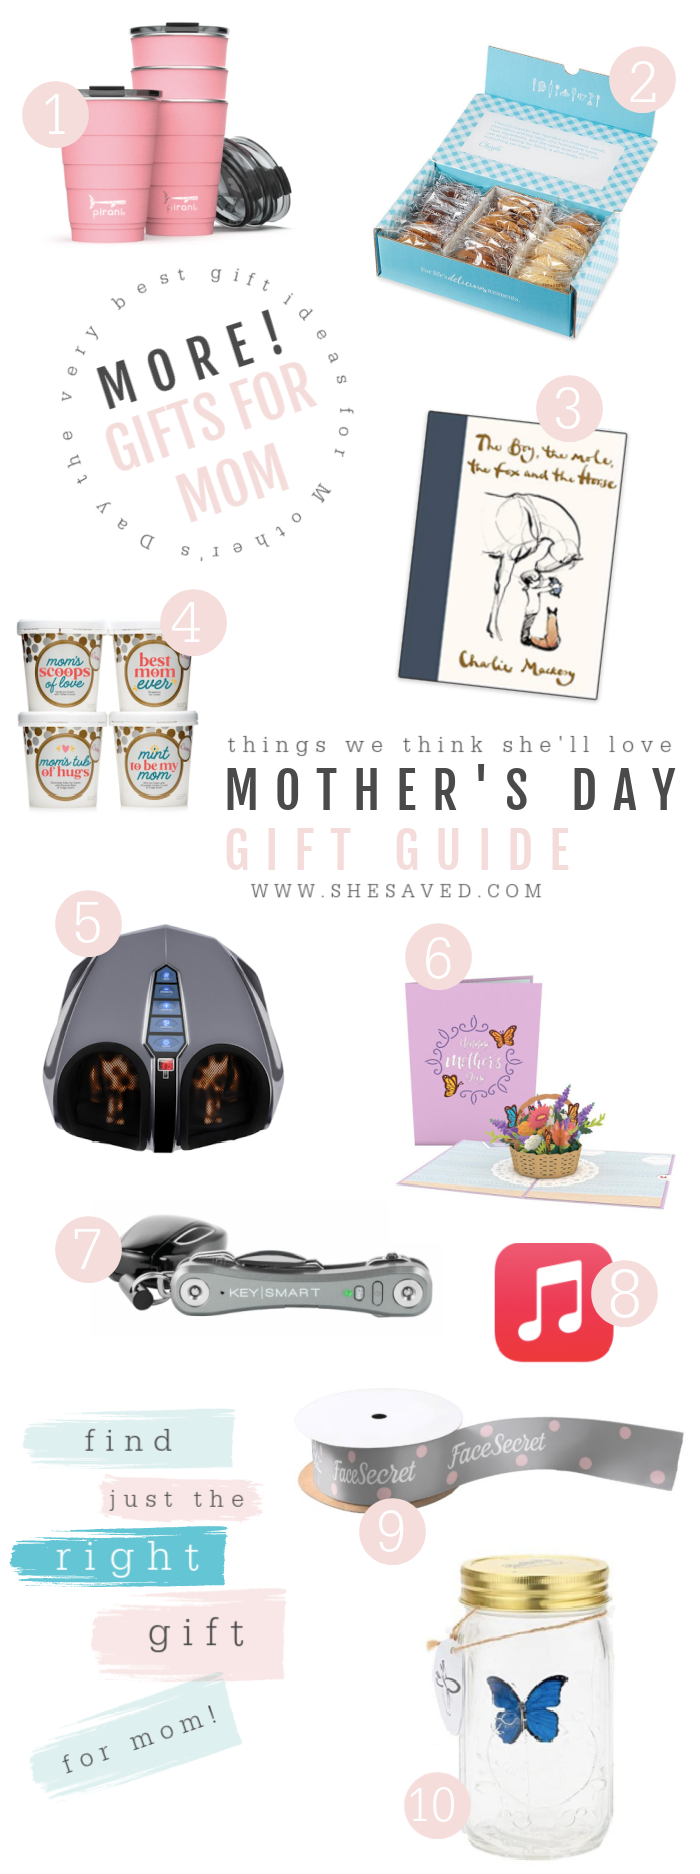 She Saved MORE Gift Ideas for Mom for Mother's Day